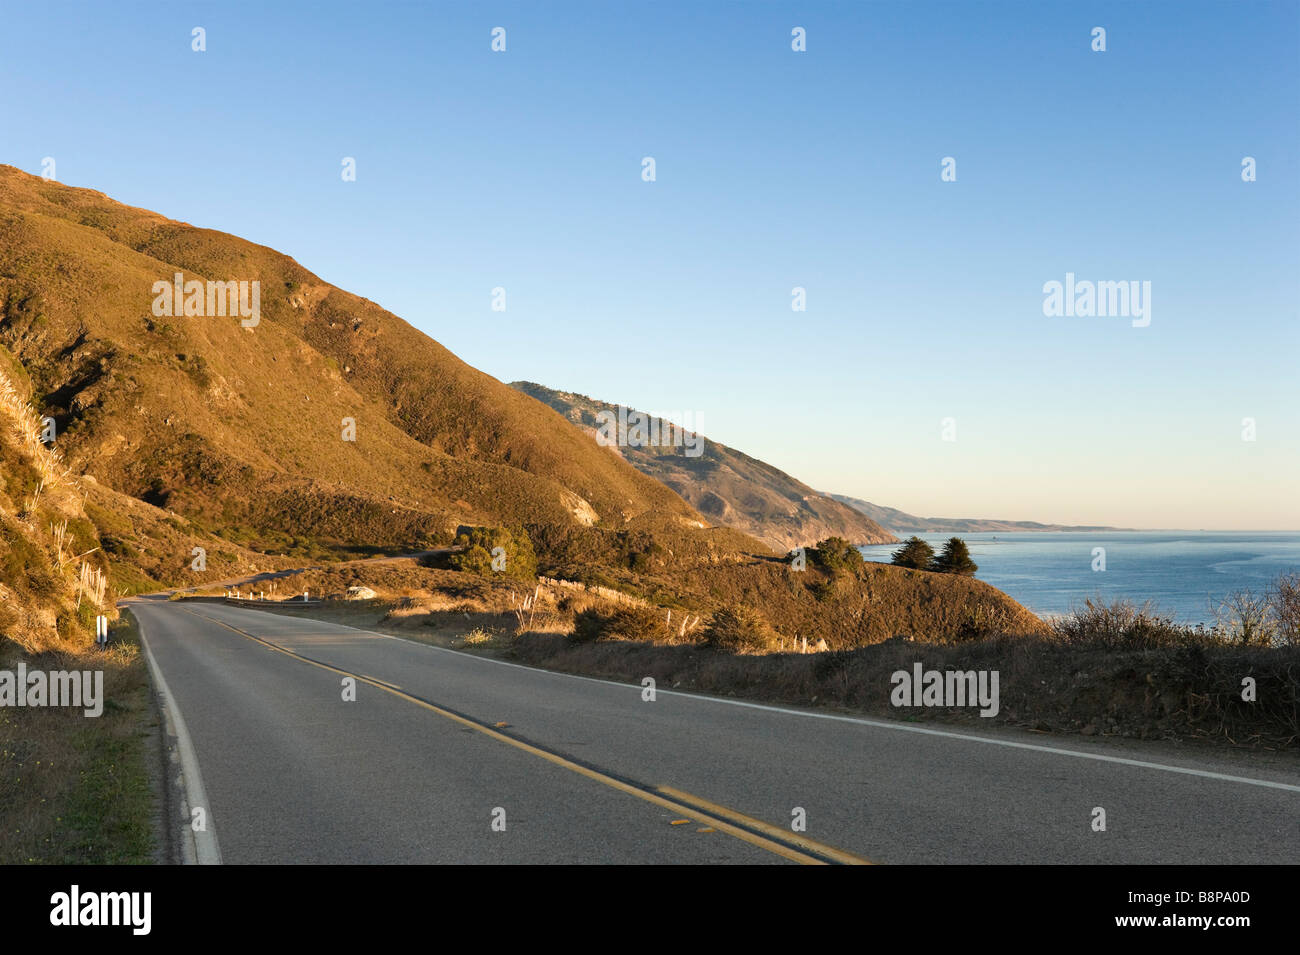 Coastline just before sunset, Pacific Coast Highway (Highway 1) near Gorda, Big Sur Coast, Central California, USA - Stock Image